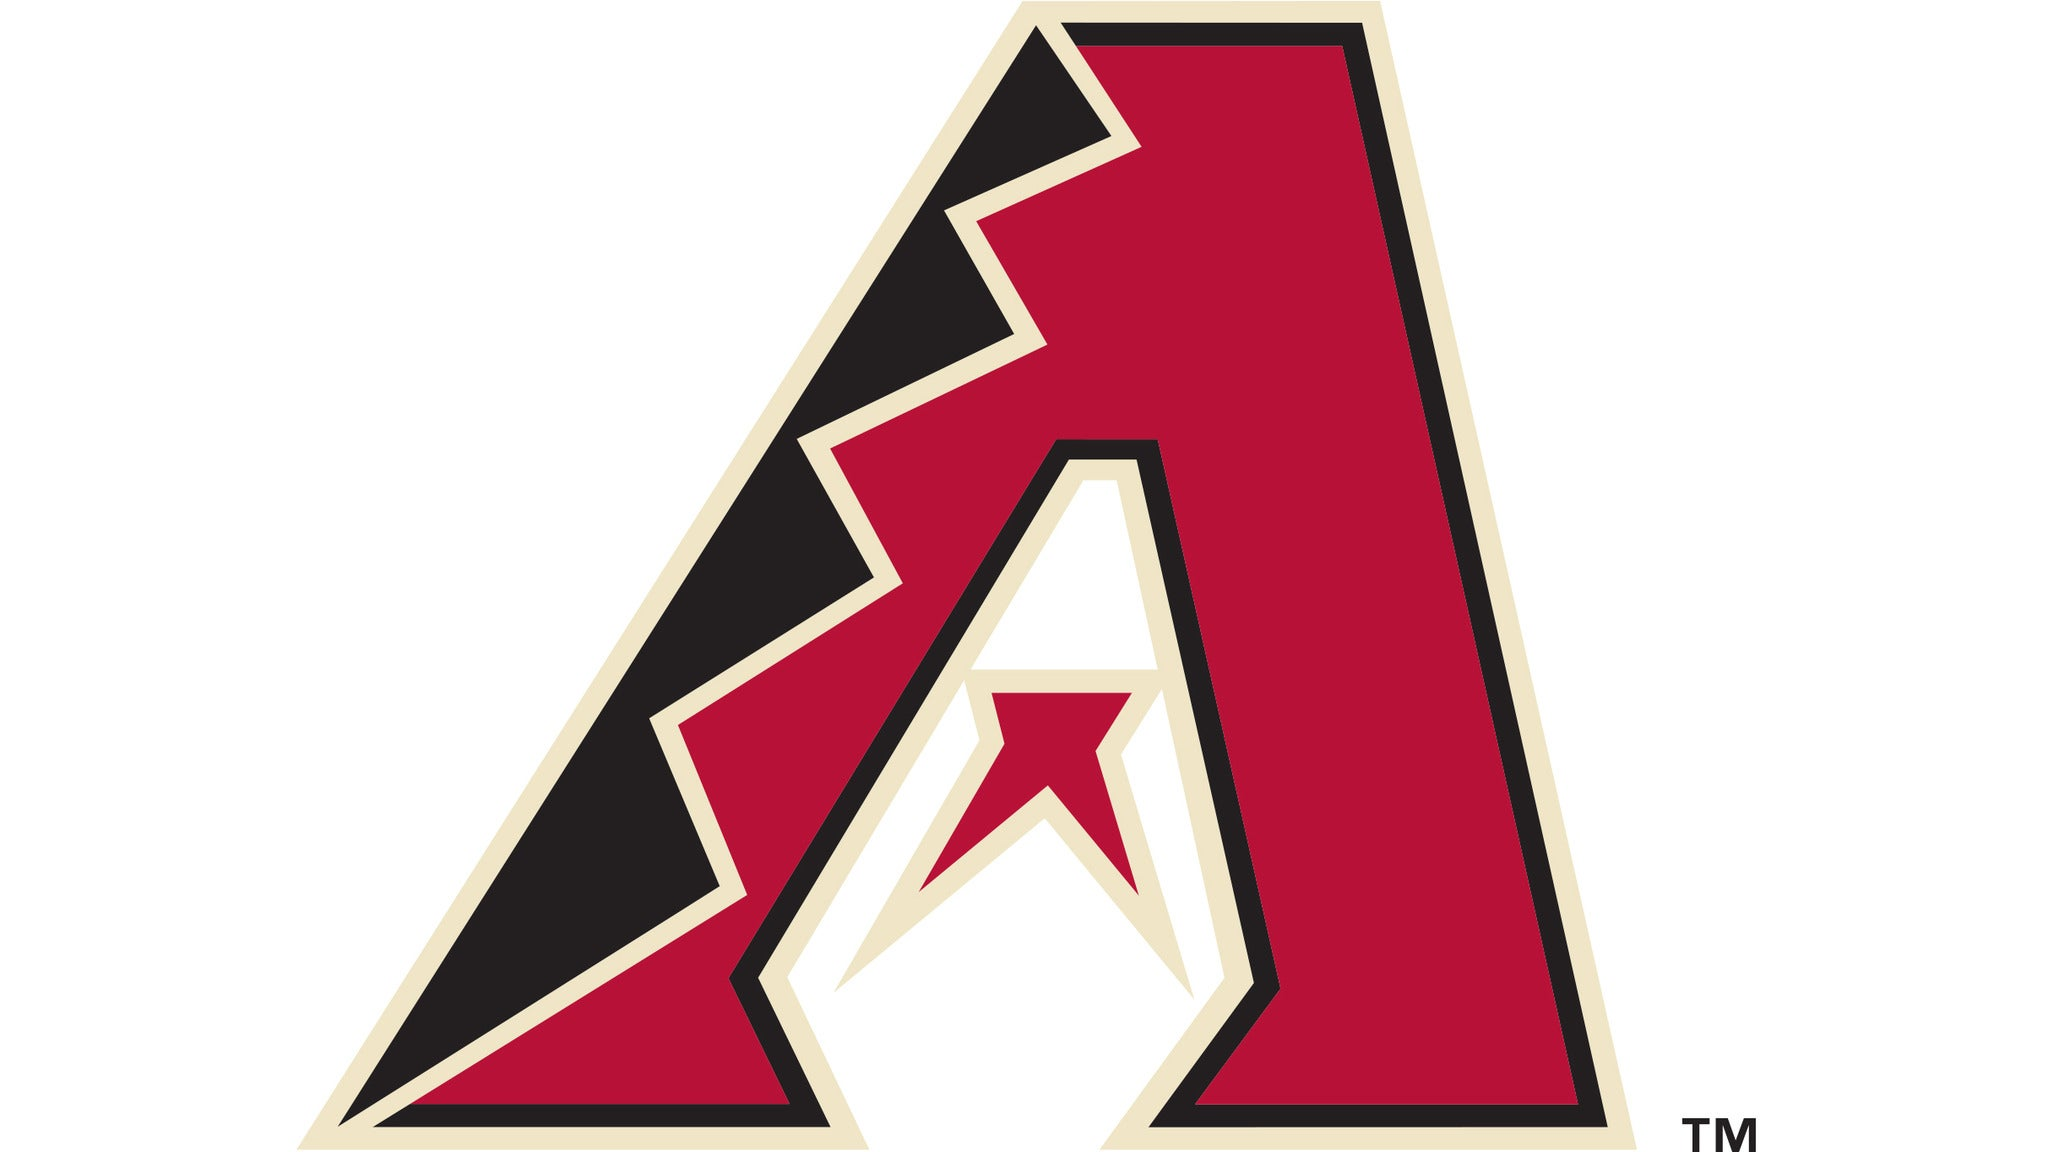 Arizona Diamondbacks vs. Colorado Rockies at Chase Field